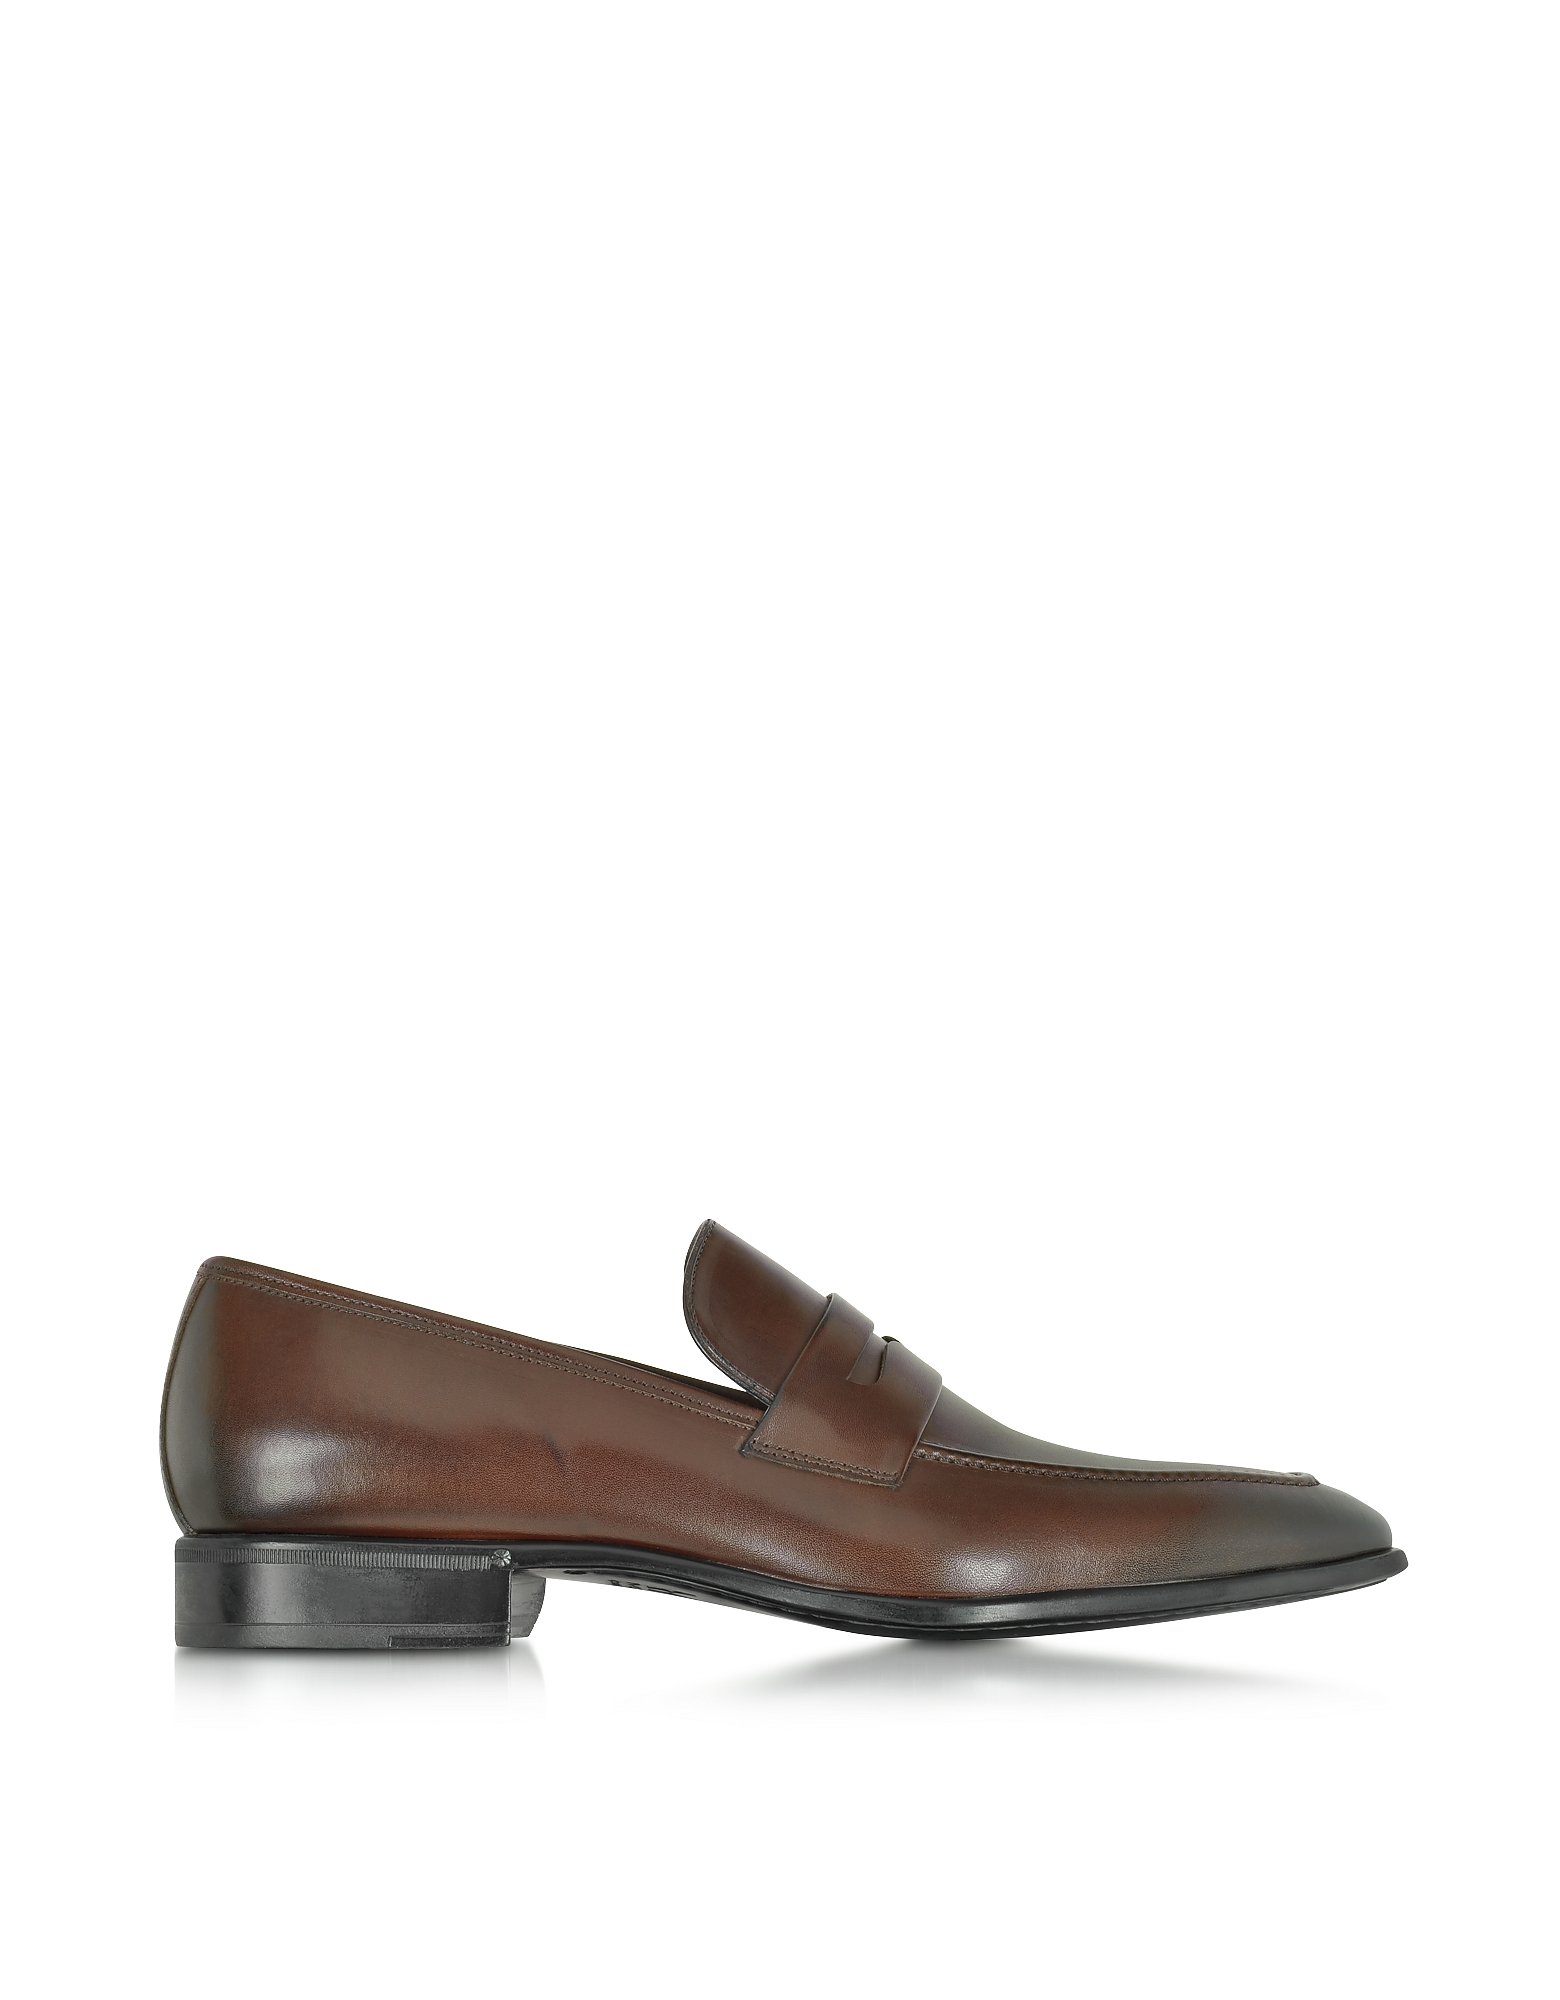 Moreschi Shoes, Liegi Dark Brown Buffalo Leather Loafer w/Rubber Sole